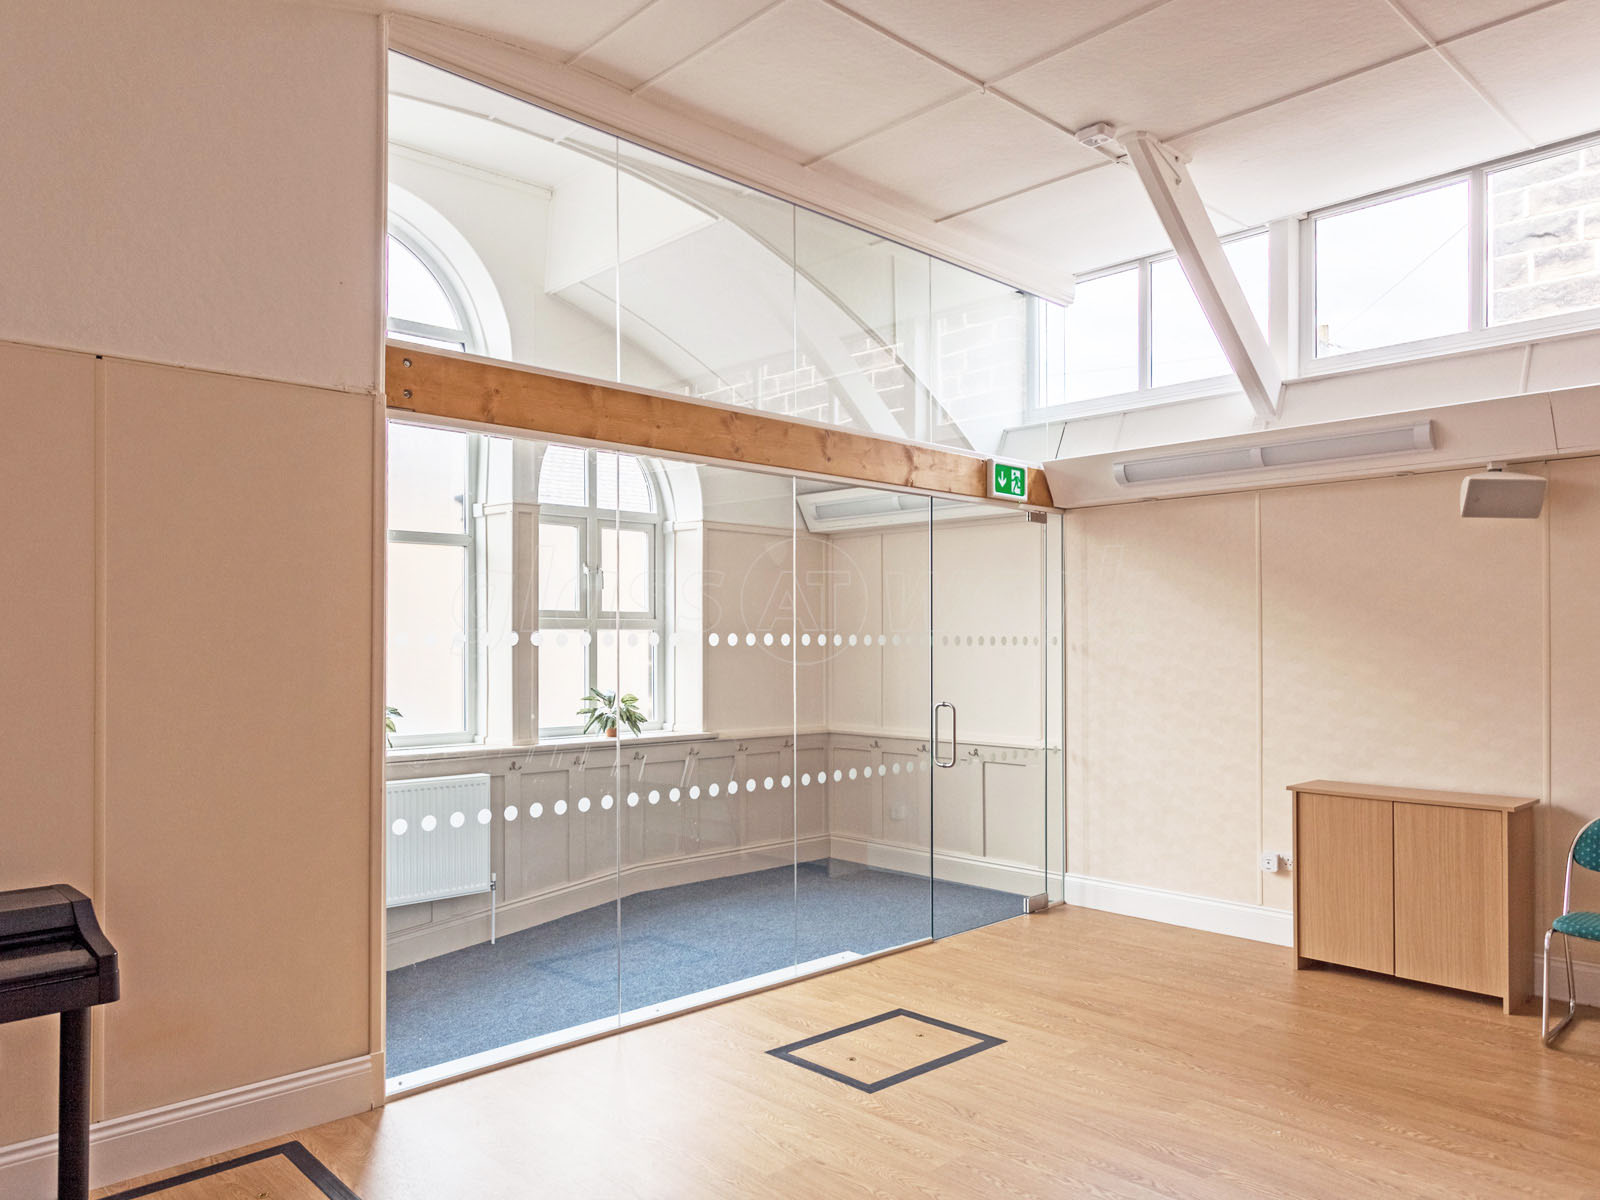 Partition Walls With Doors : Glass partitioning at oughtibridge wesleyan reform chapel